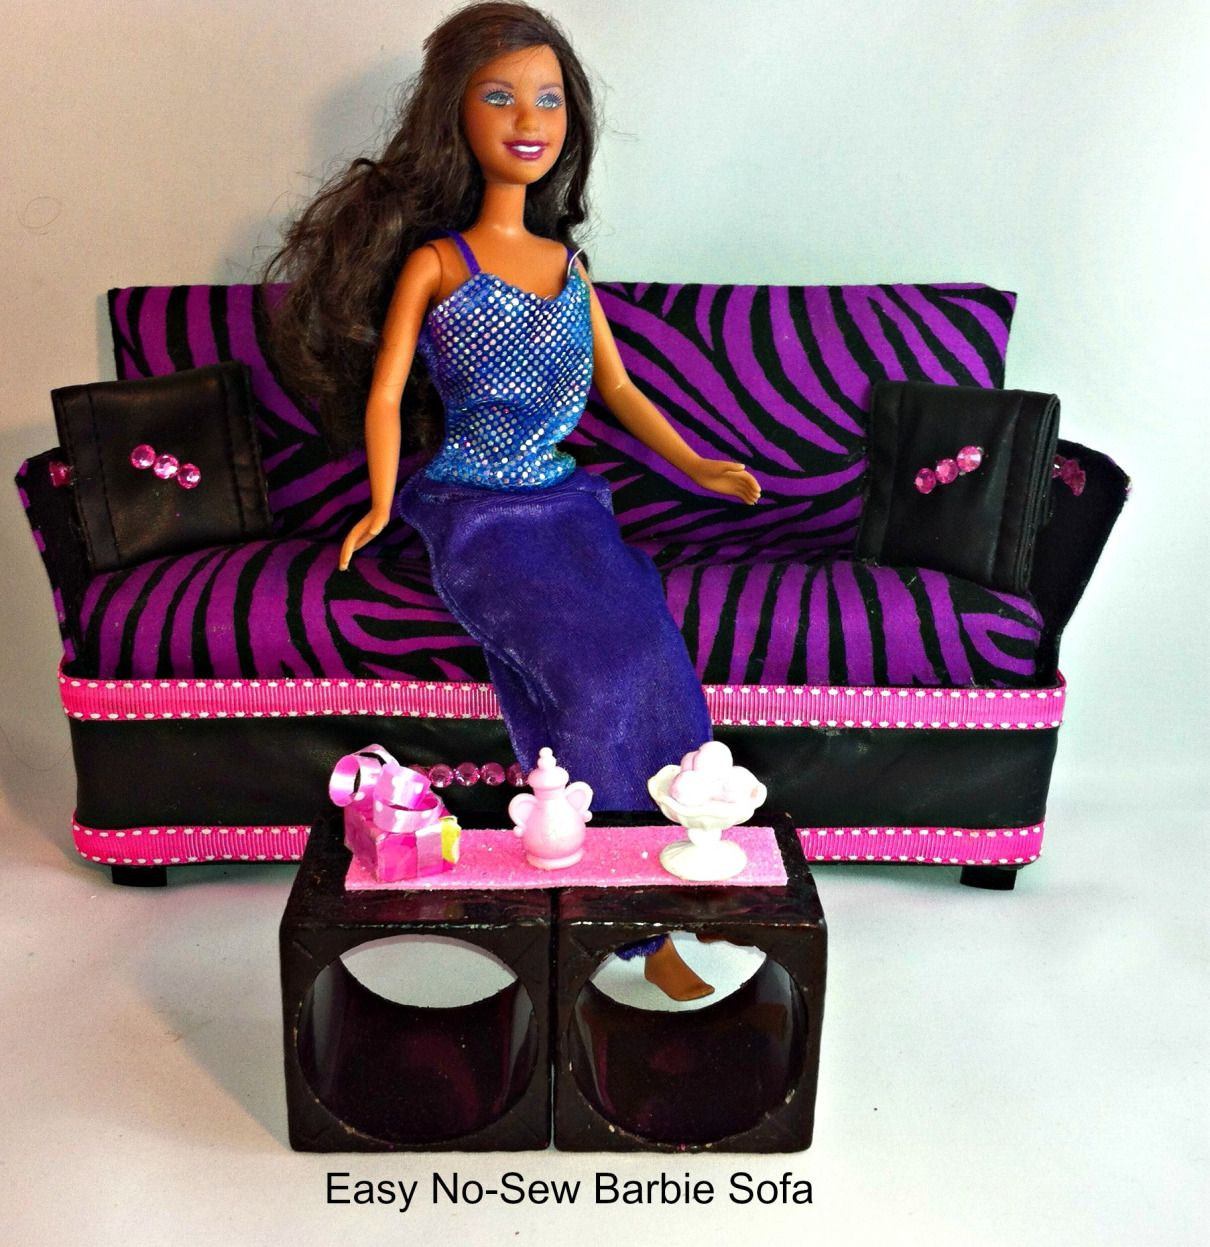 Easy, NoSew DIY Barbie Doll Couch Diy barbie clothes